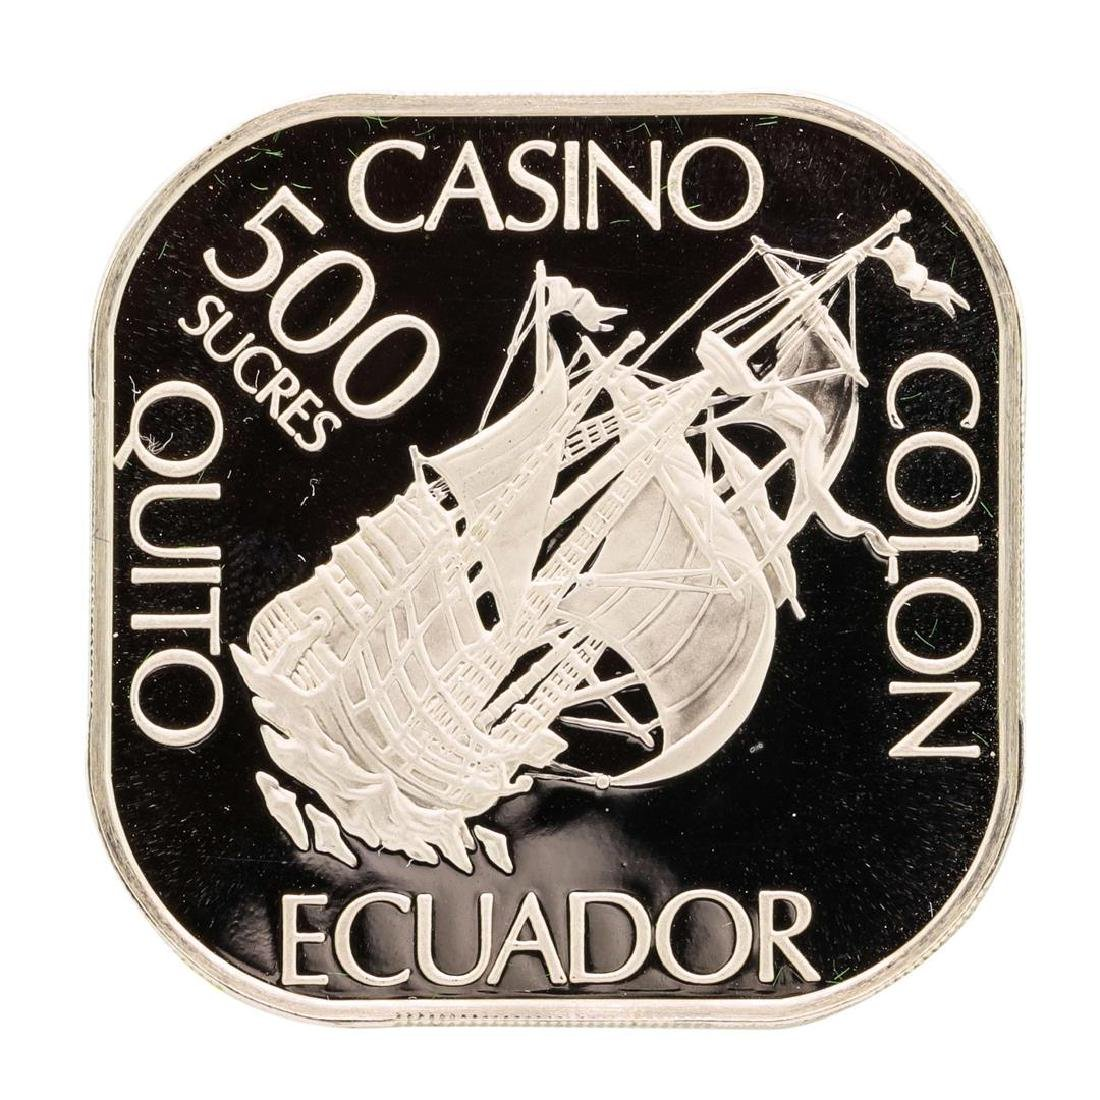 Casino Colon Quito Ecuador 21 gram .925 Sterling Silver - 2